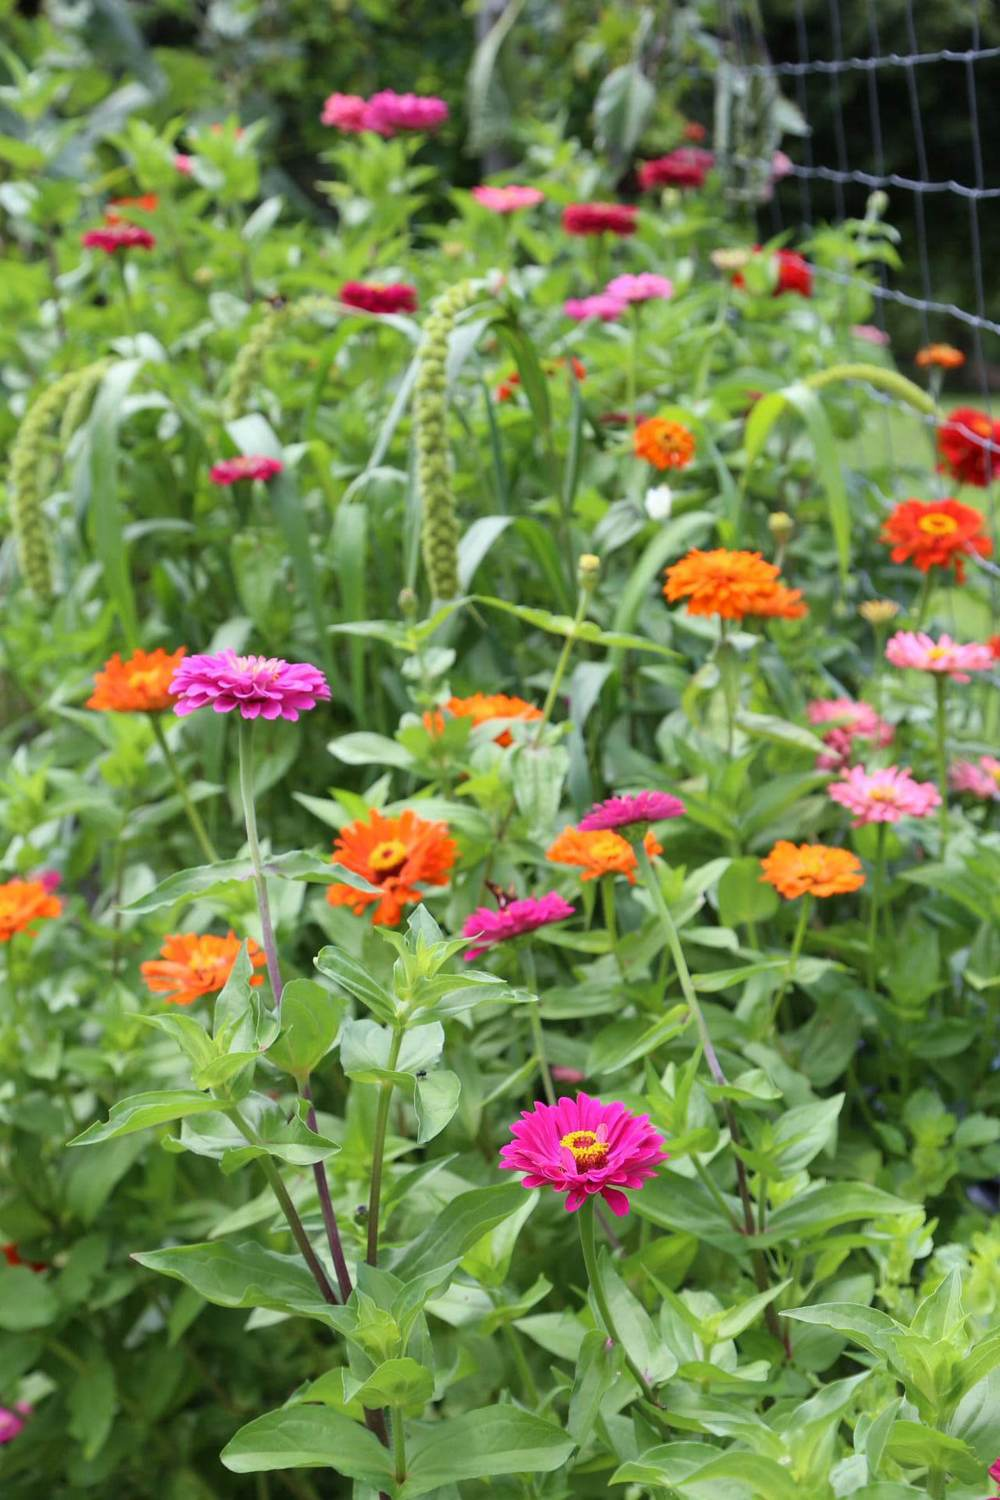 I couldn't resist. Yet another zinnia shot. They're so vibrant this year.